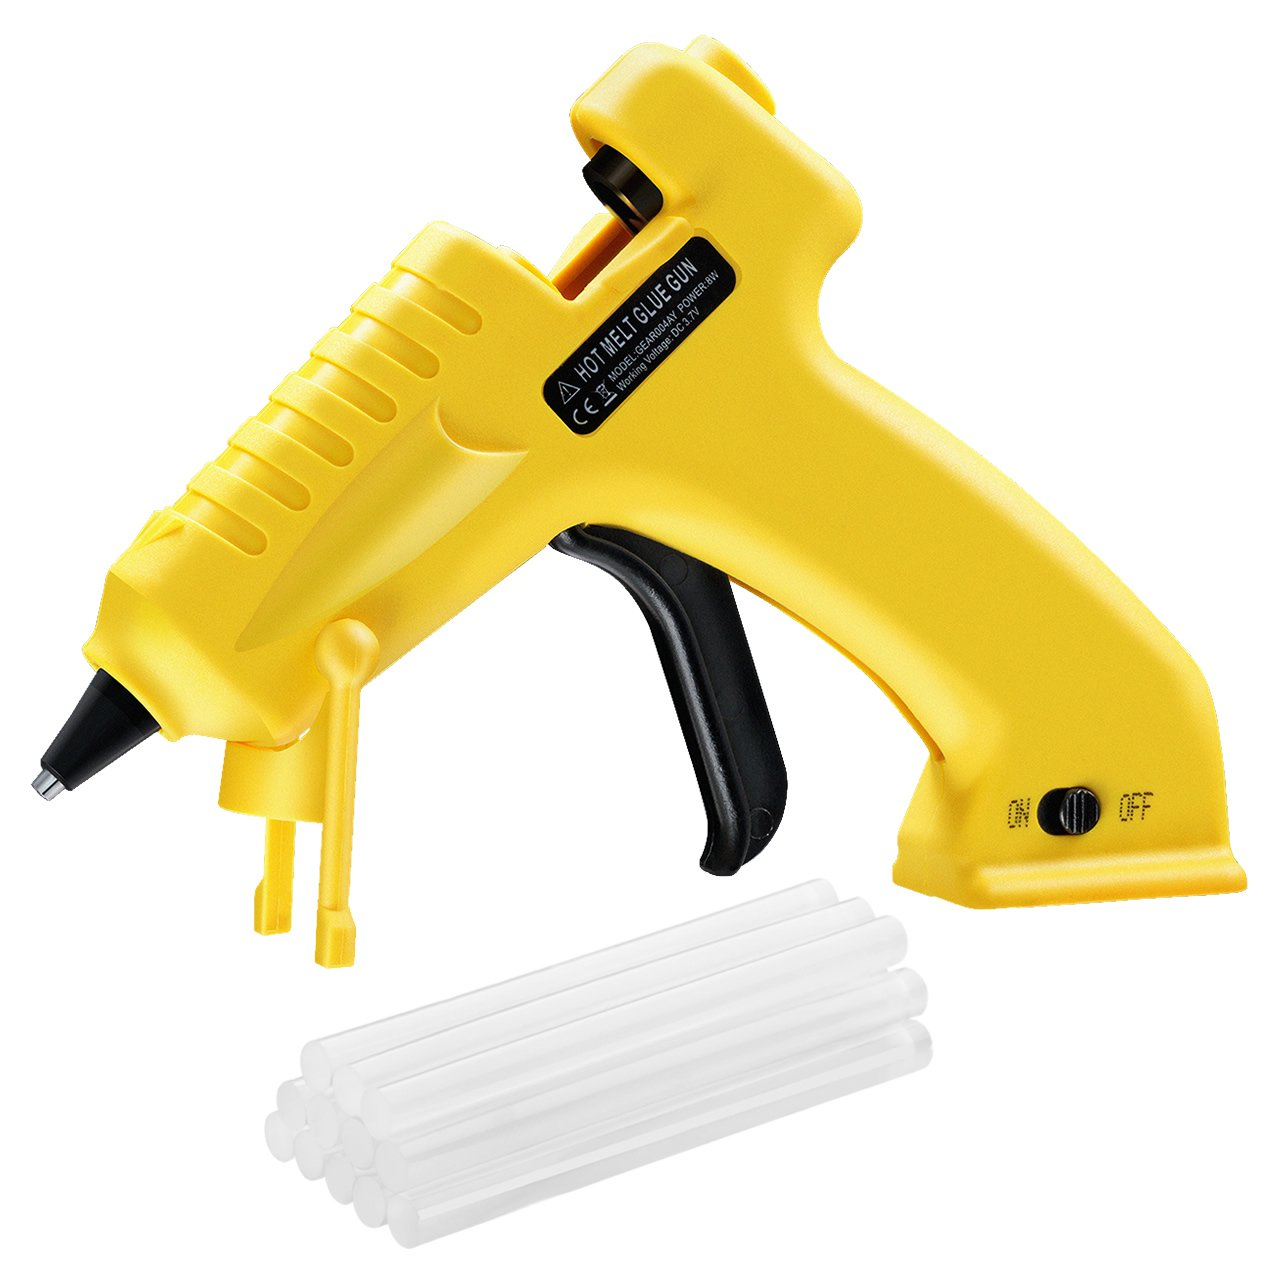 TOPELEK Hot Glue Gun with 12pcs Glue Sticks, Melting Glue Gun Set for School, Office and Home, DIY Arts and Crafts Projects, Home Quick Repairs (100 Watts, Dark Green) Patec